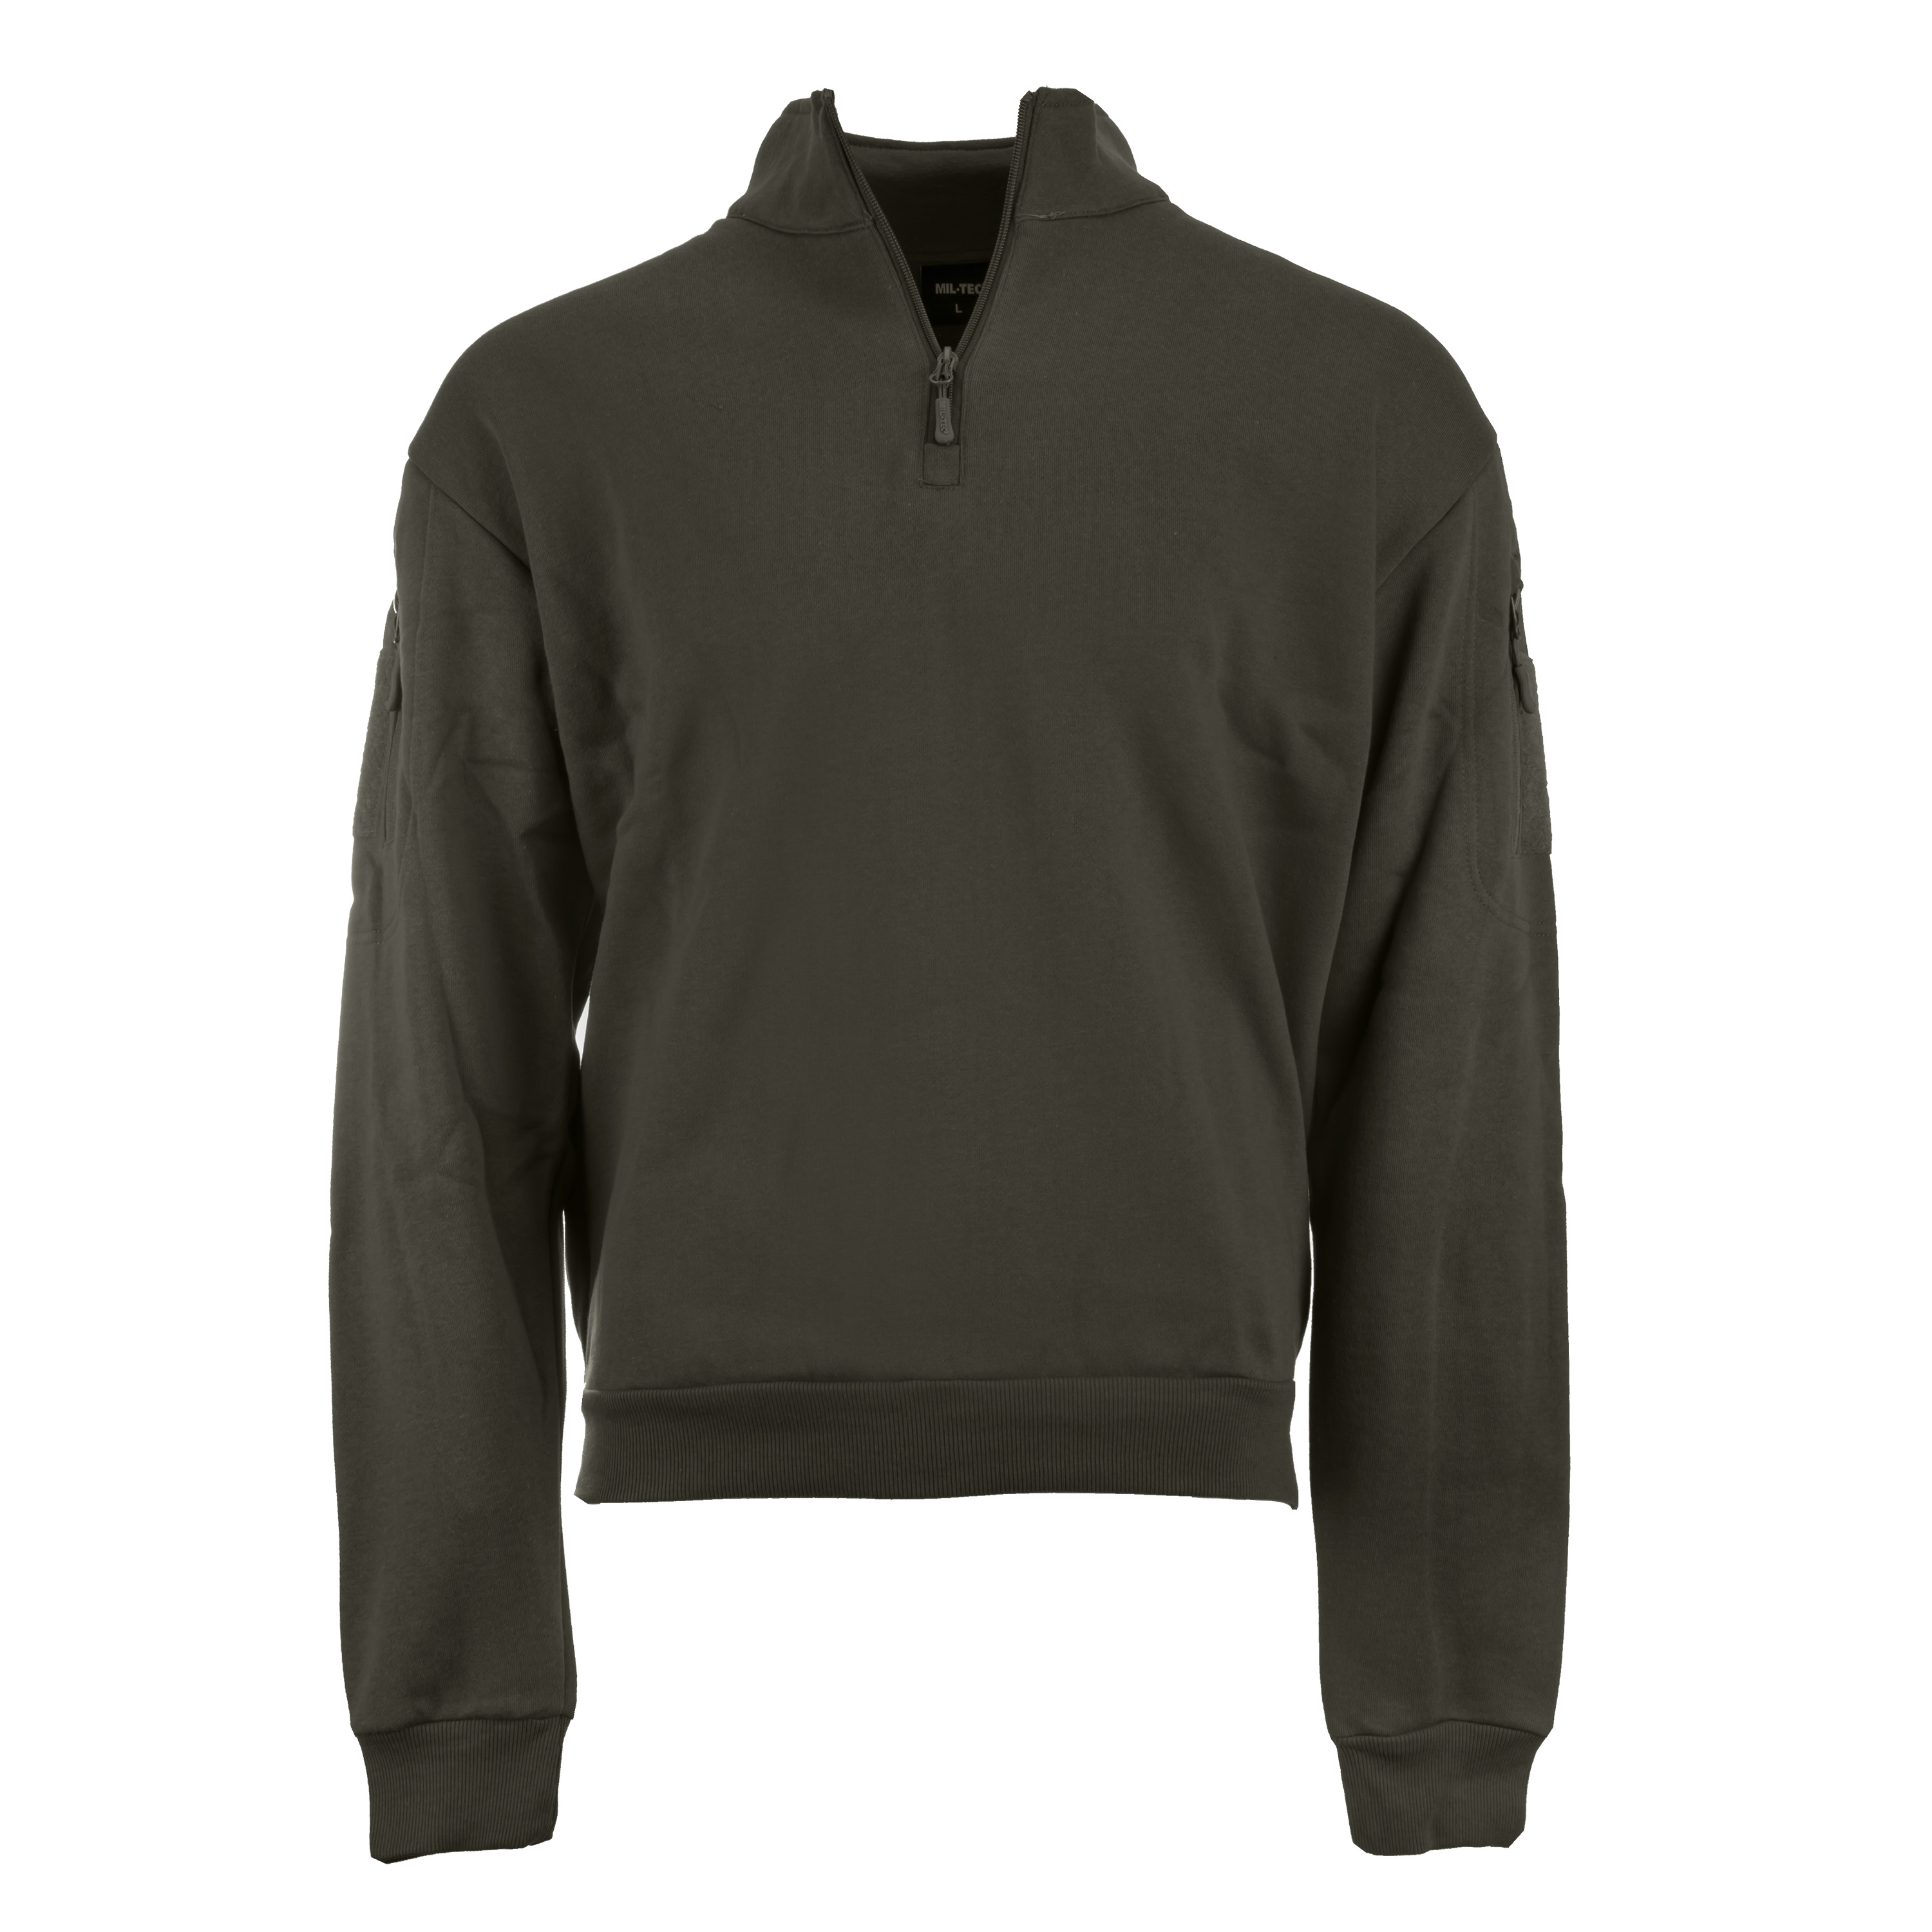 Mil-Tec Tactical Sweatshirt mit Zipper ranger green